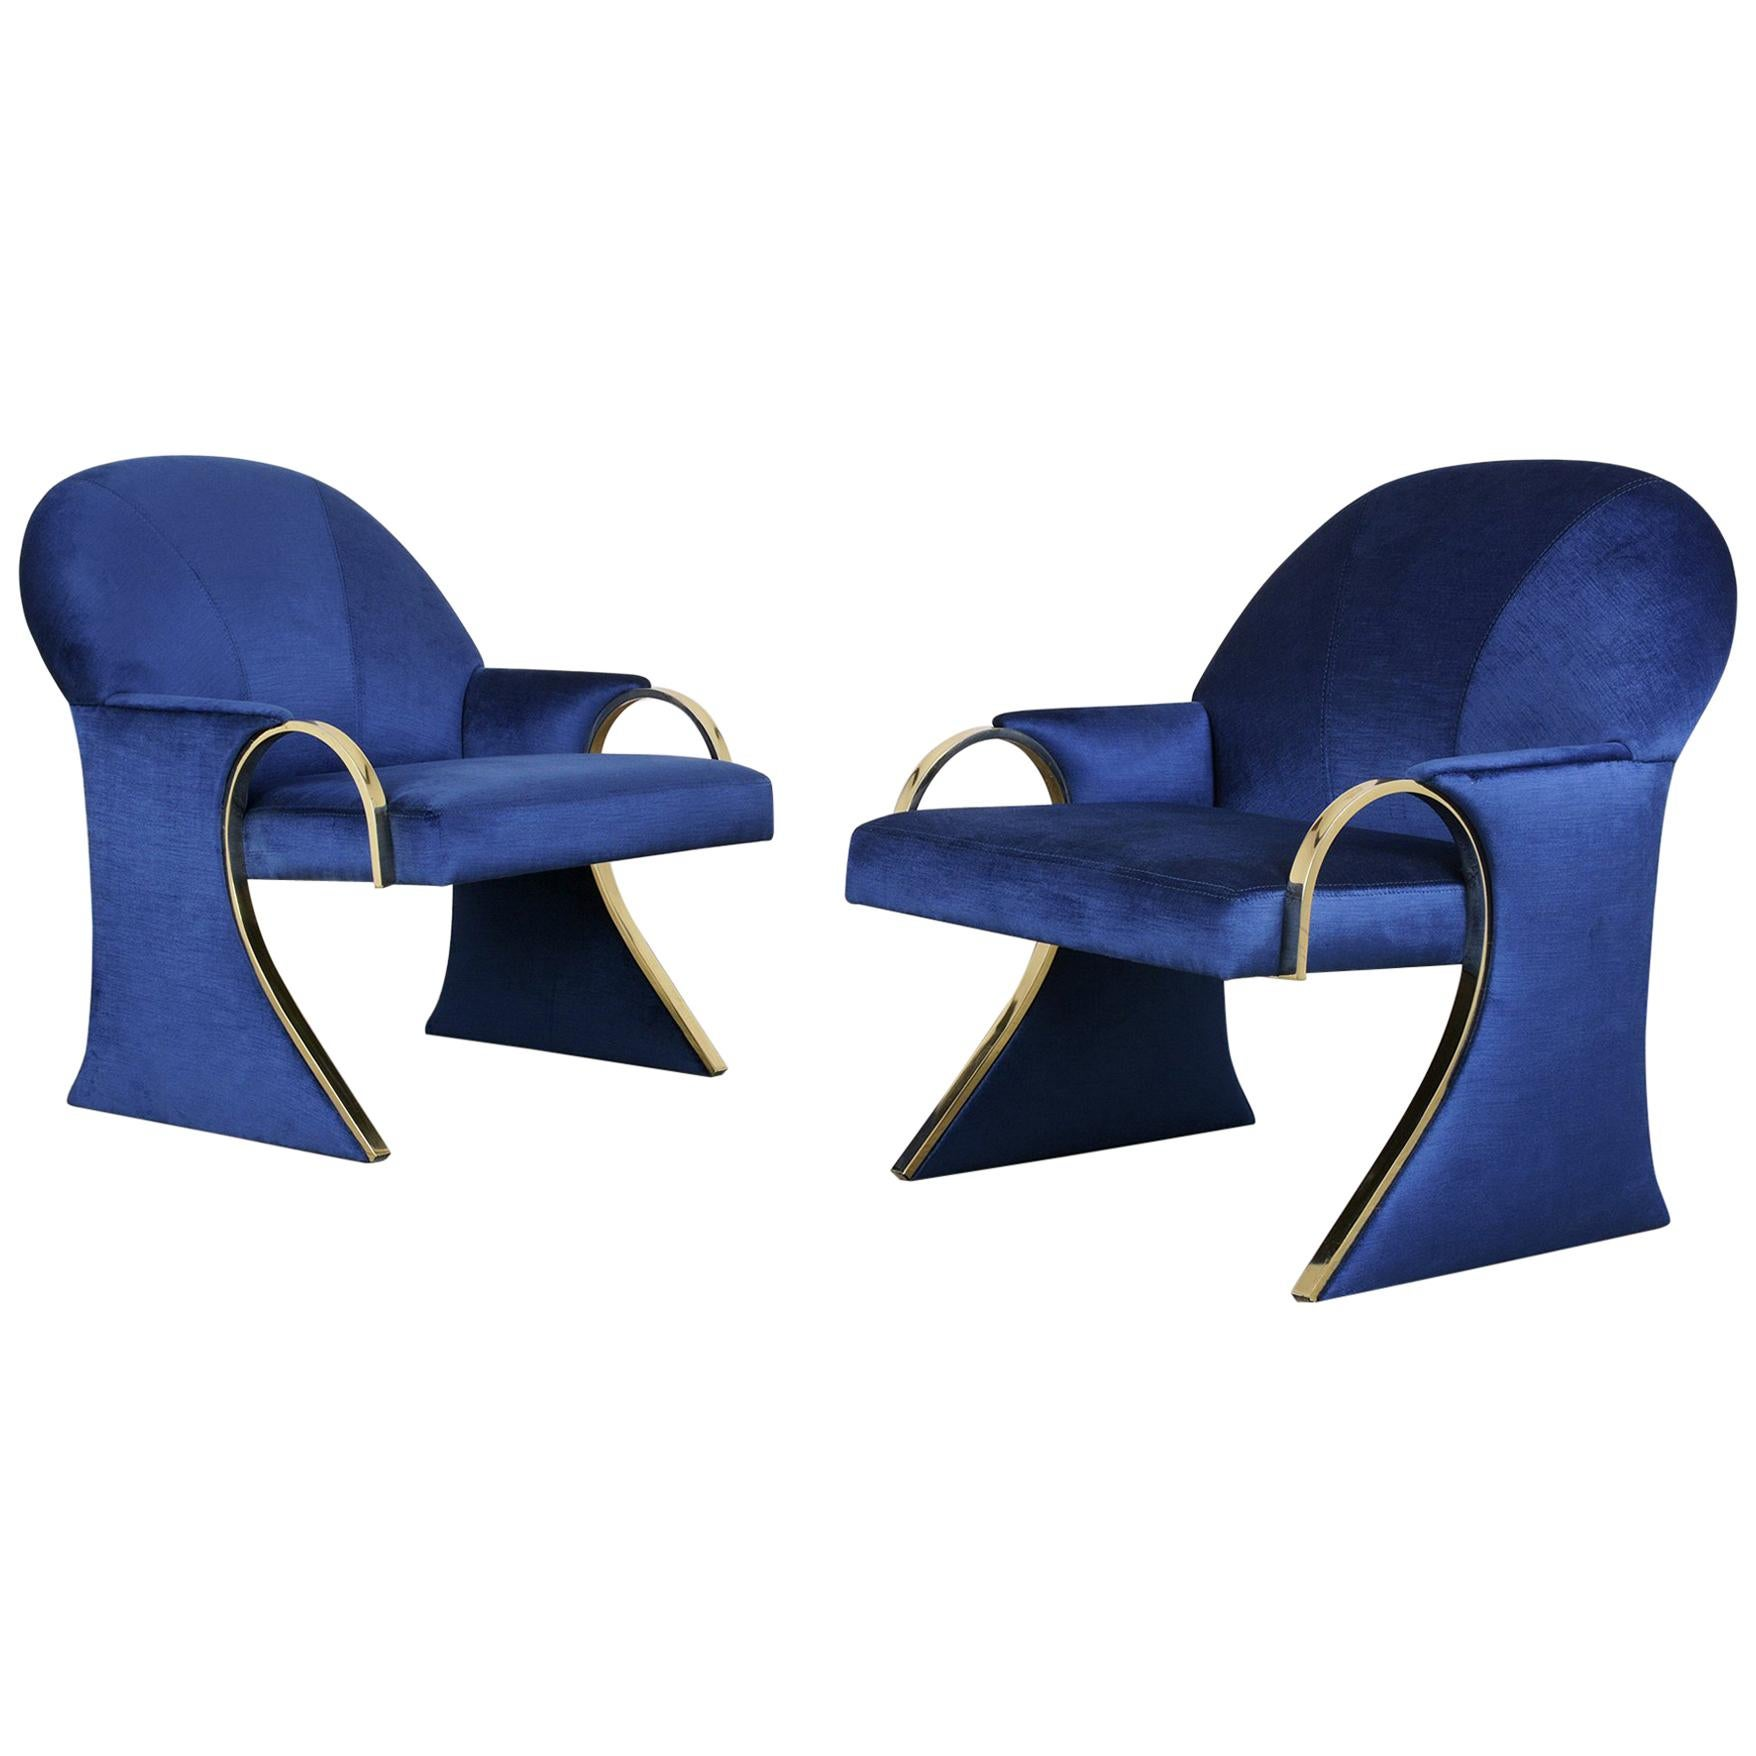 Unique Pair of Vintage Mid Century Modern Lounge Chairs